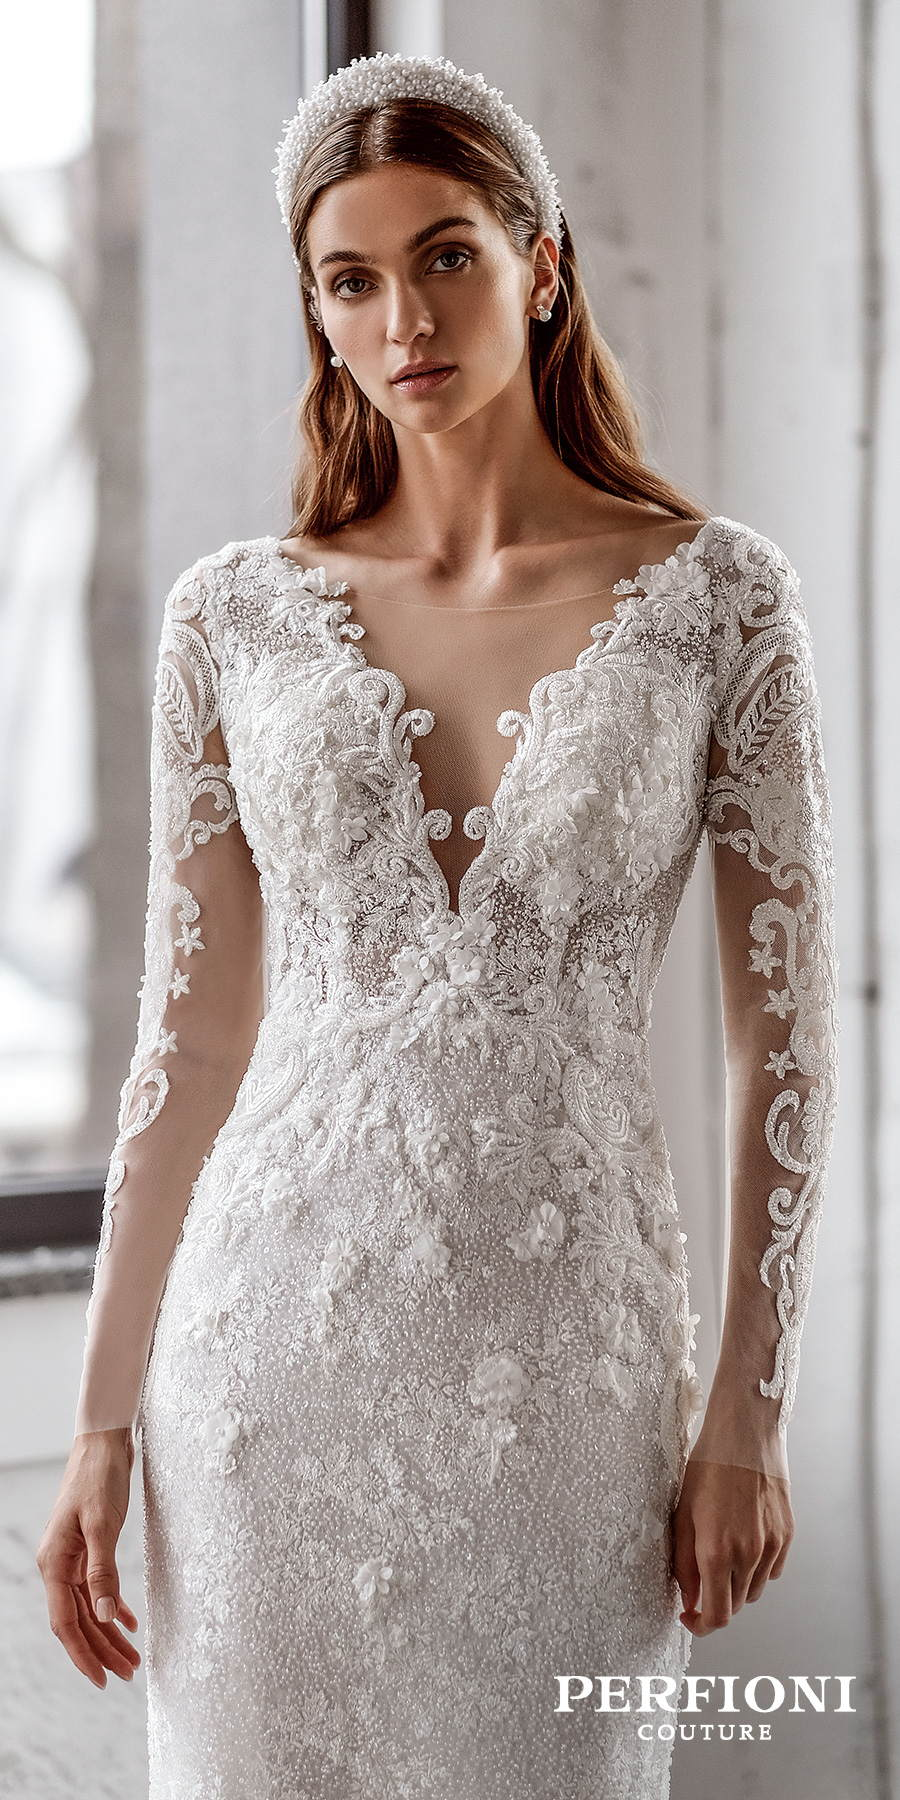 perfioni 2020 love season bridal long sleeves v neck full embellishment elegant sheath wedding dress covered lace back sweep train (sarah) zv